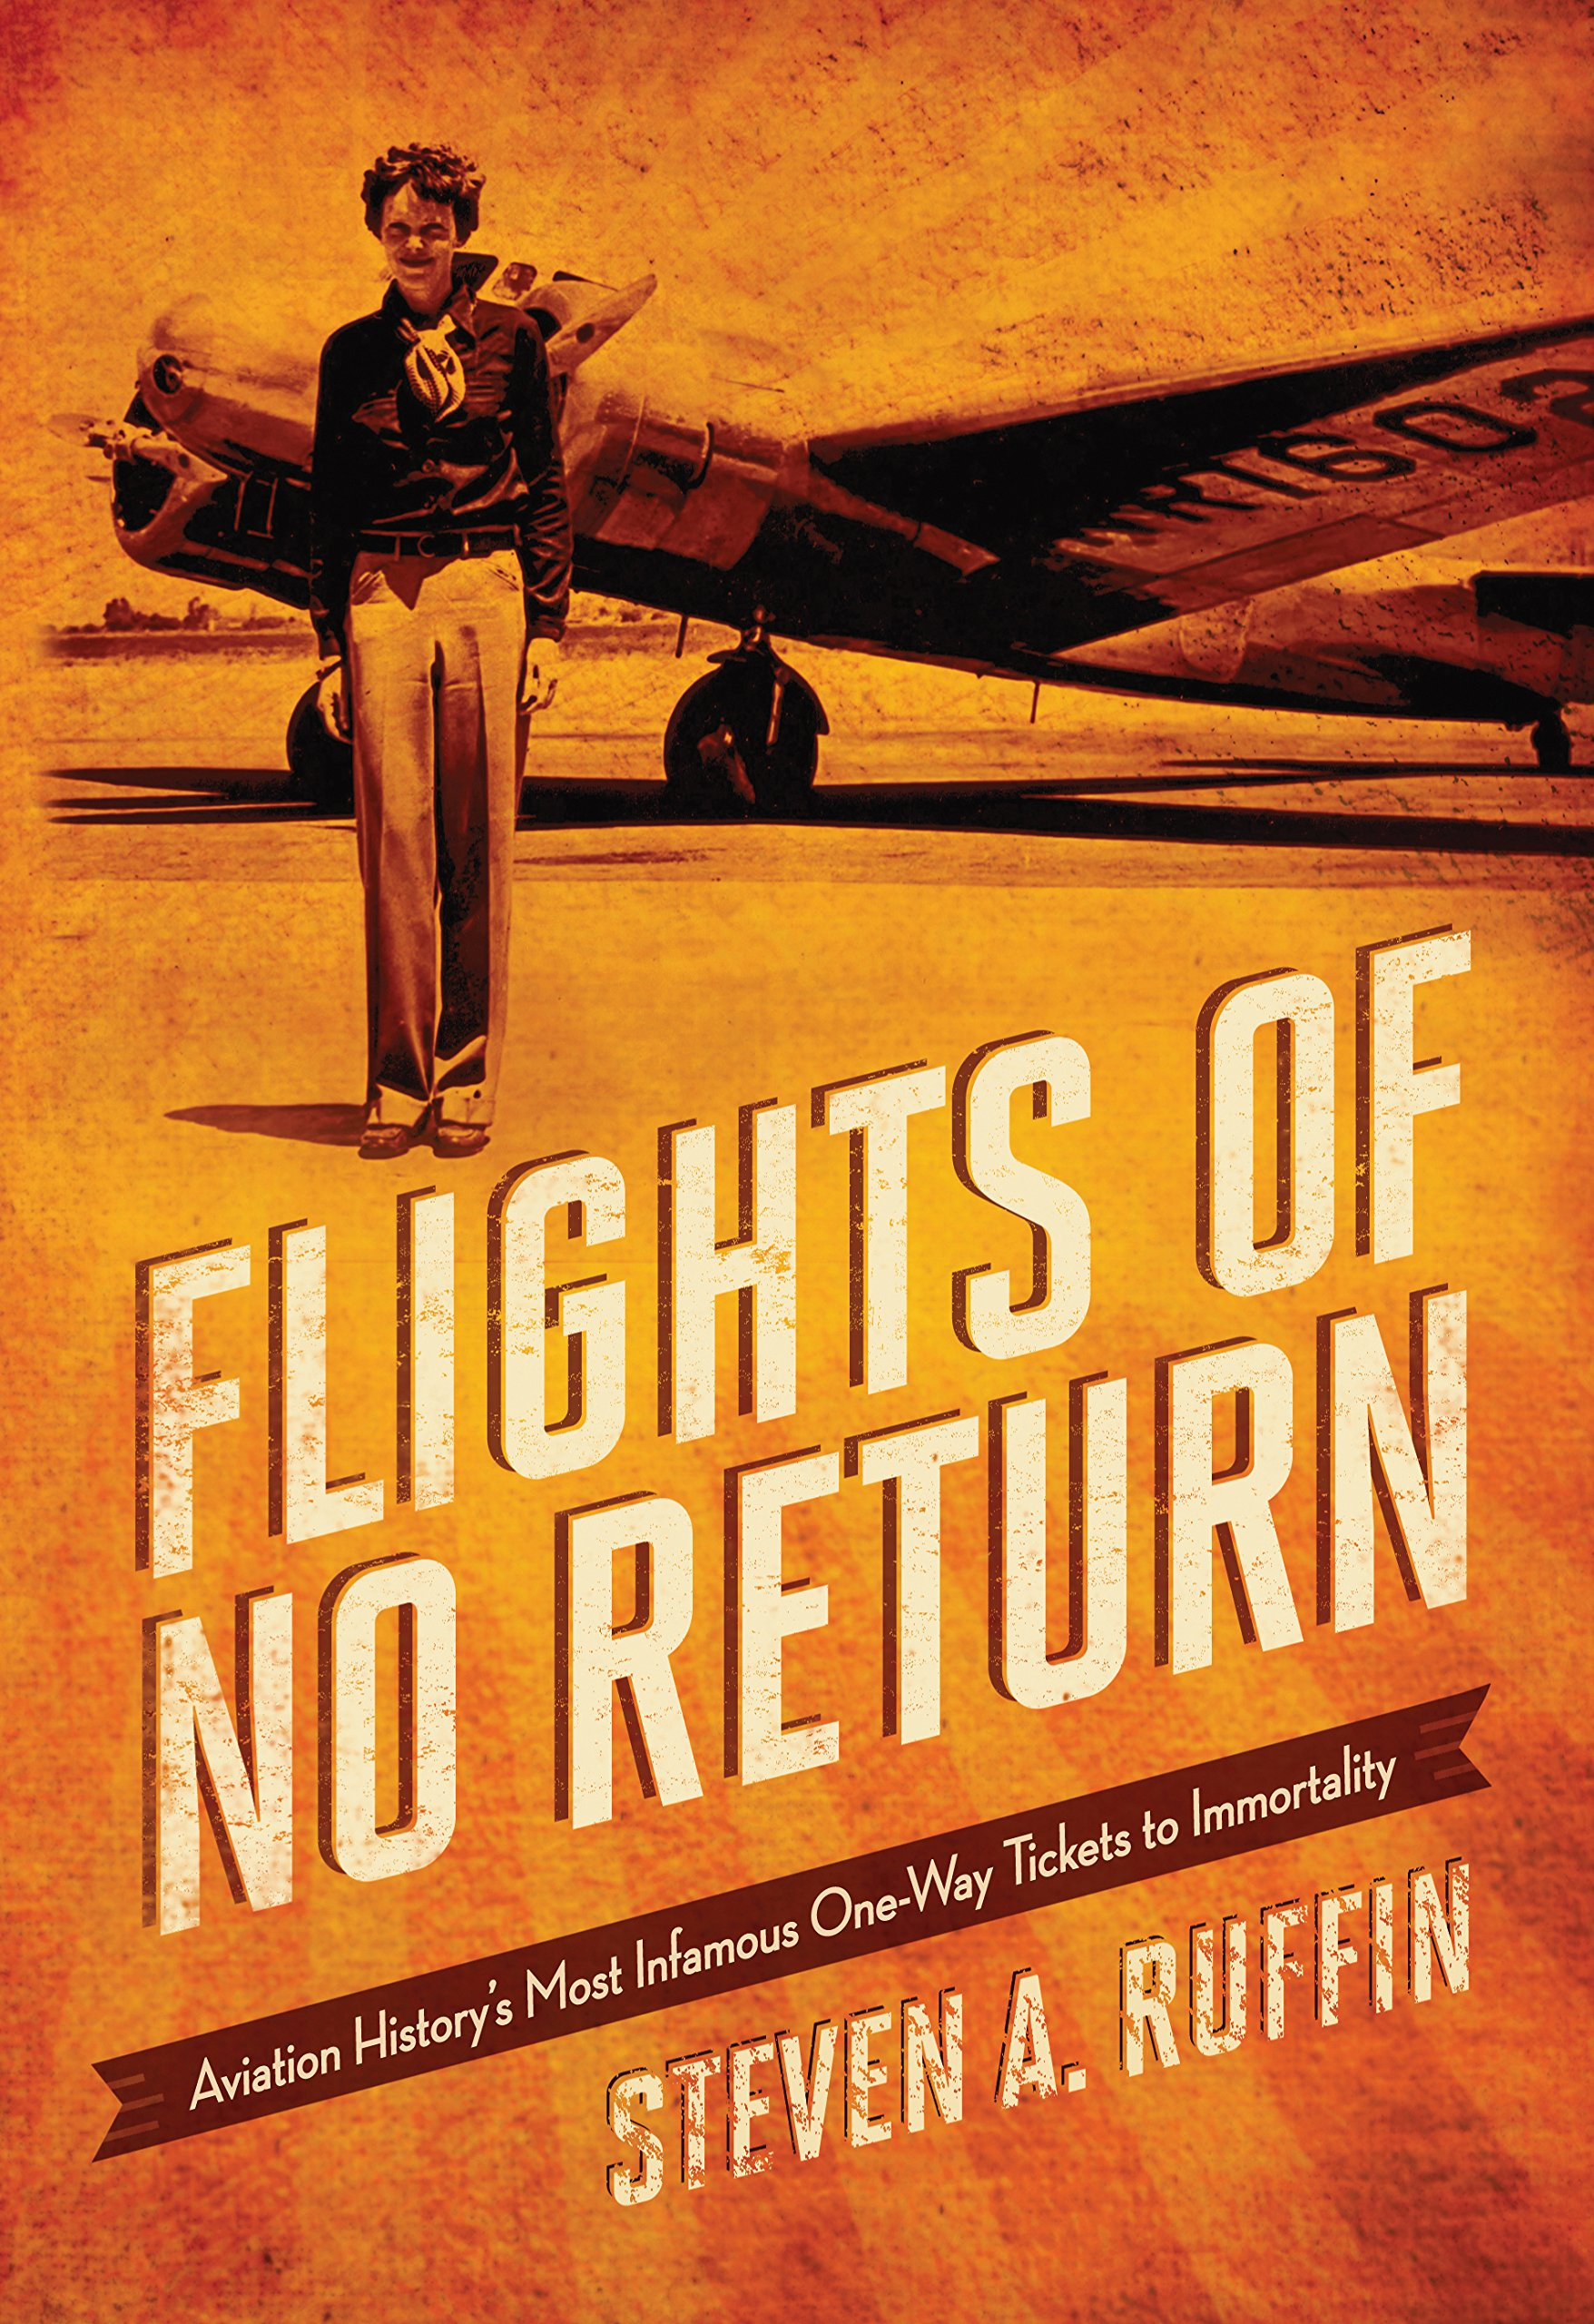 Flights of No Return: Aviation History's Most Infamous One-Way Tickets to Immortality ebook